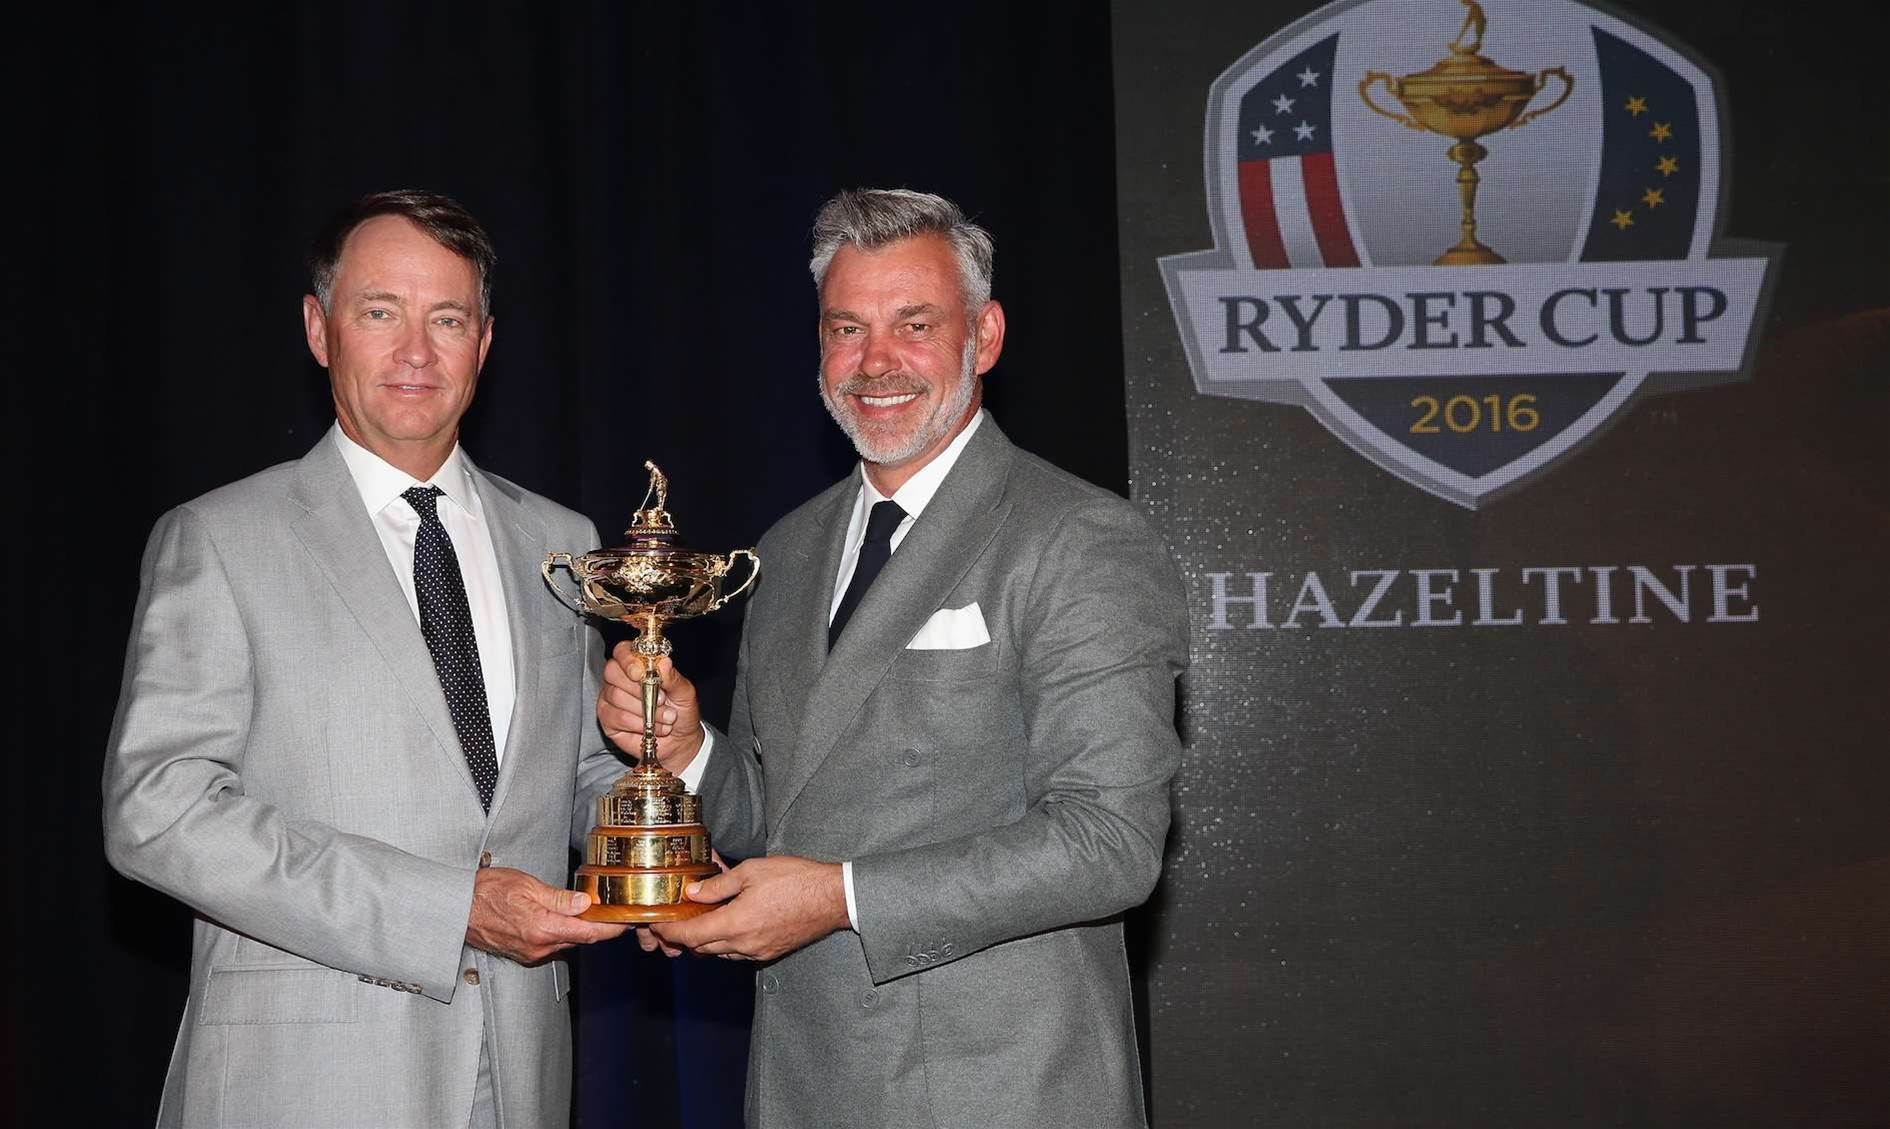 RYDER CUP: For God's sake let the matches begin